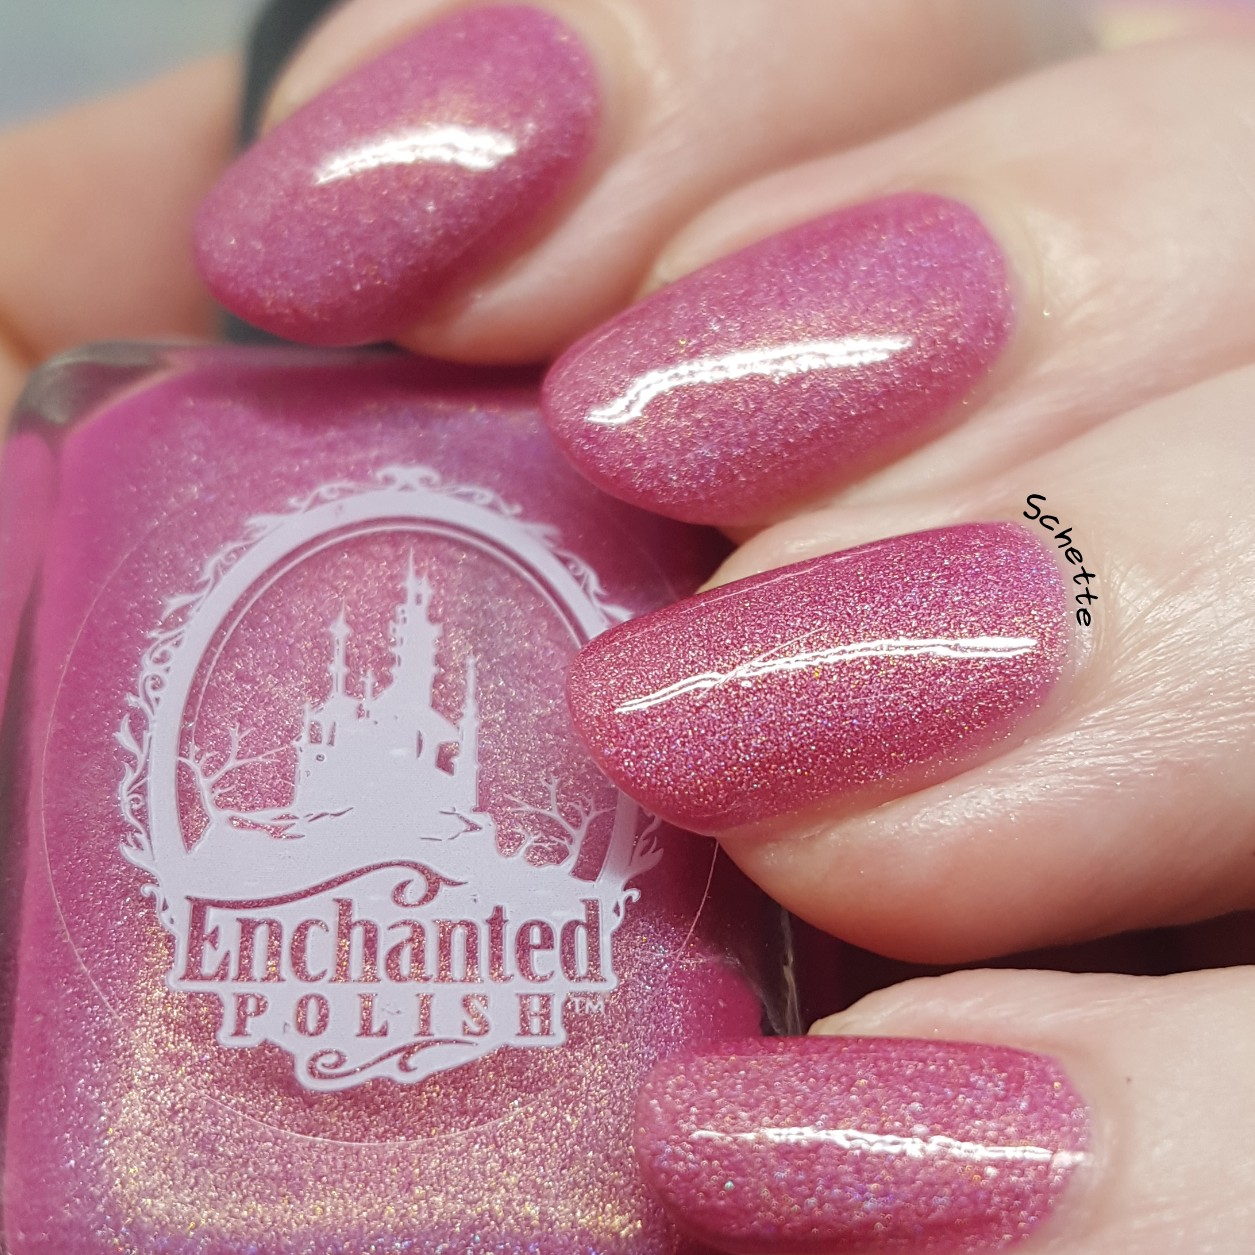 Enchanted Polish - May 2013